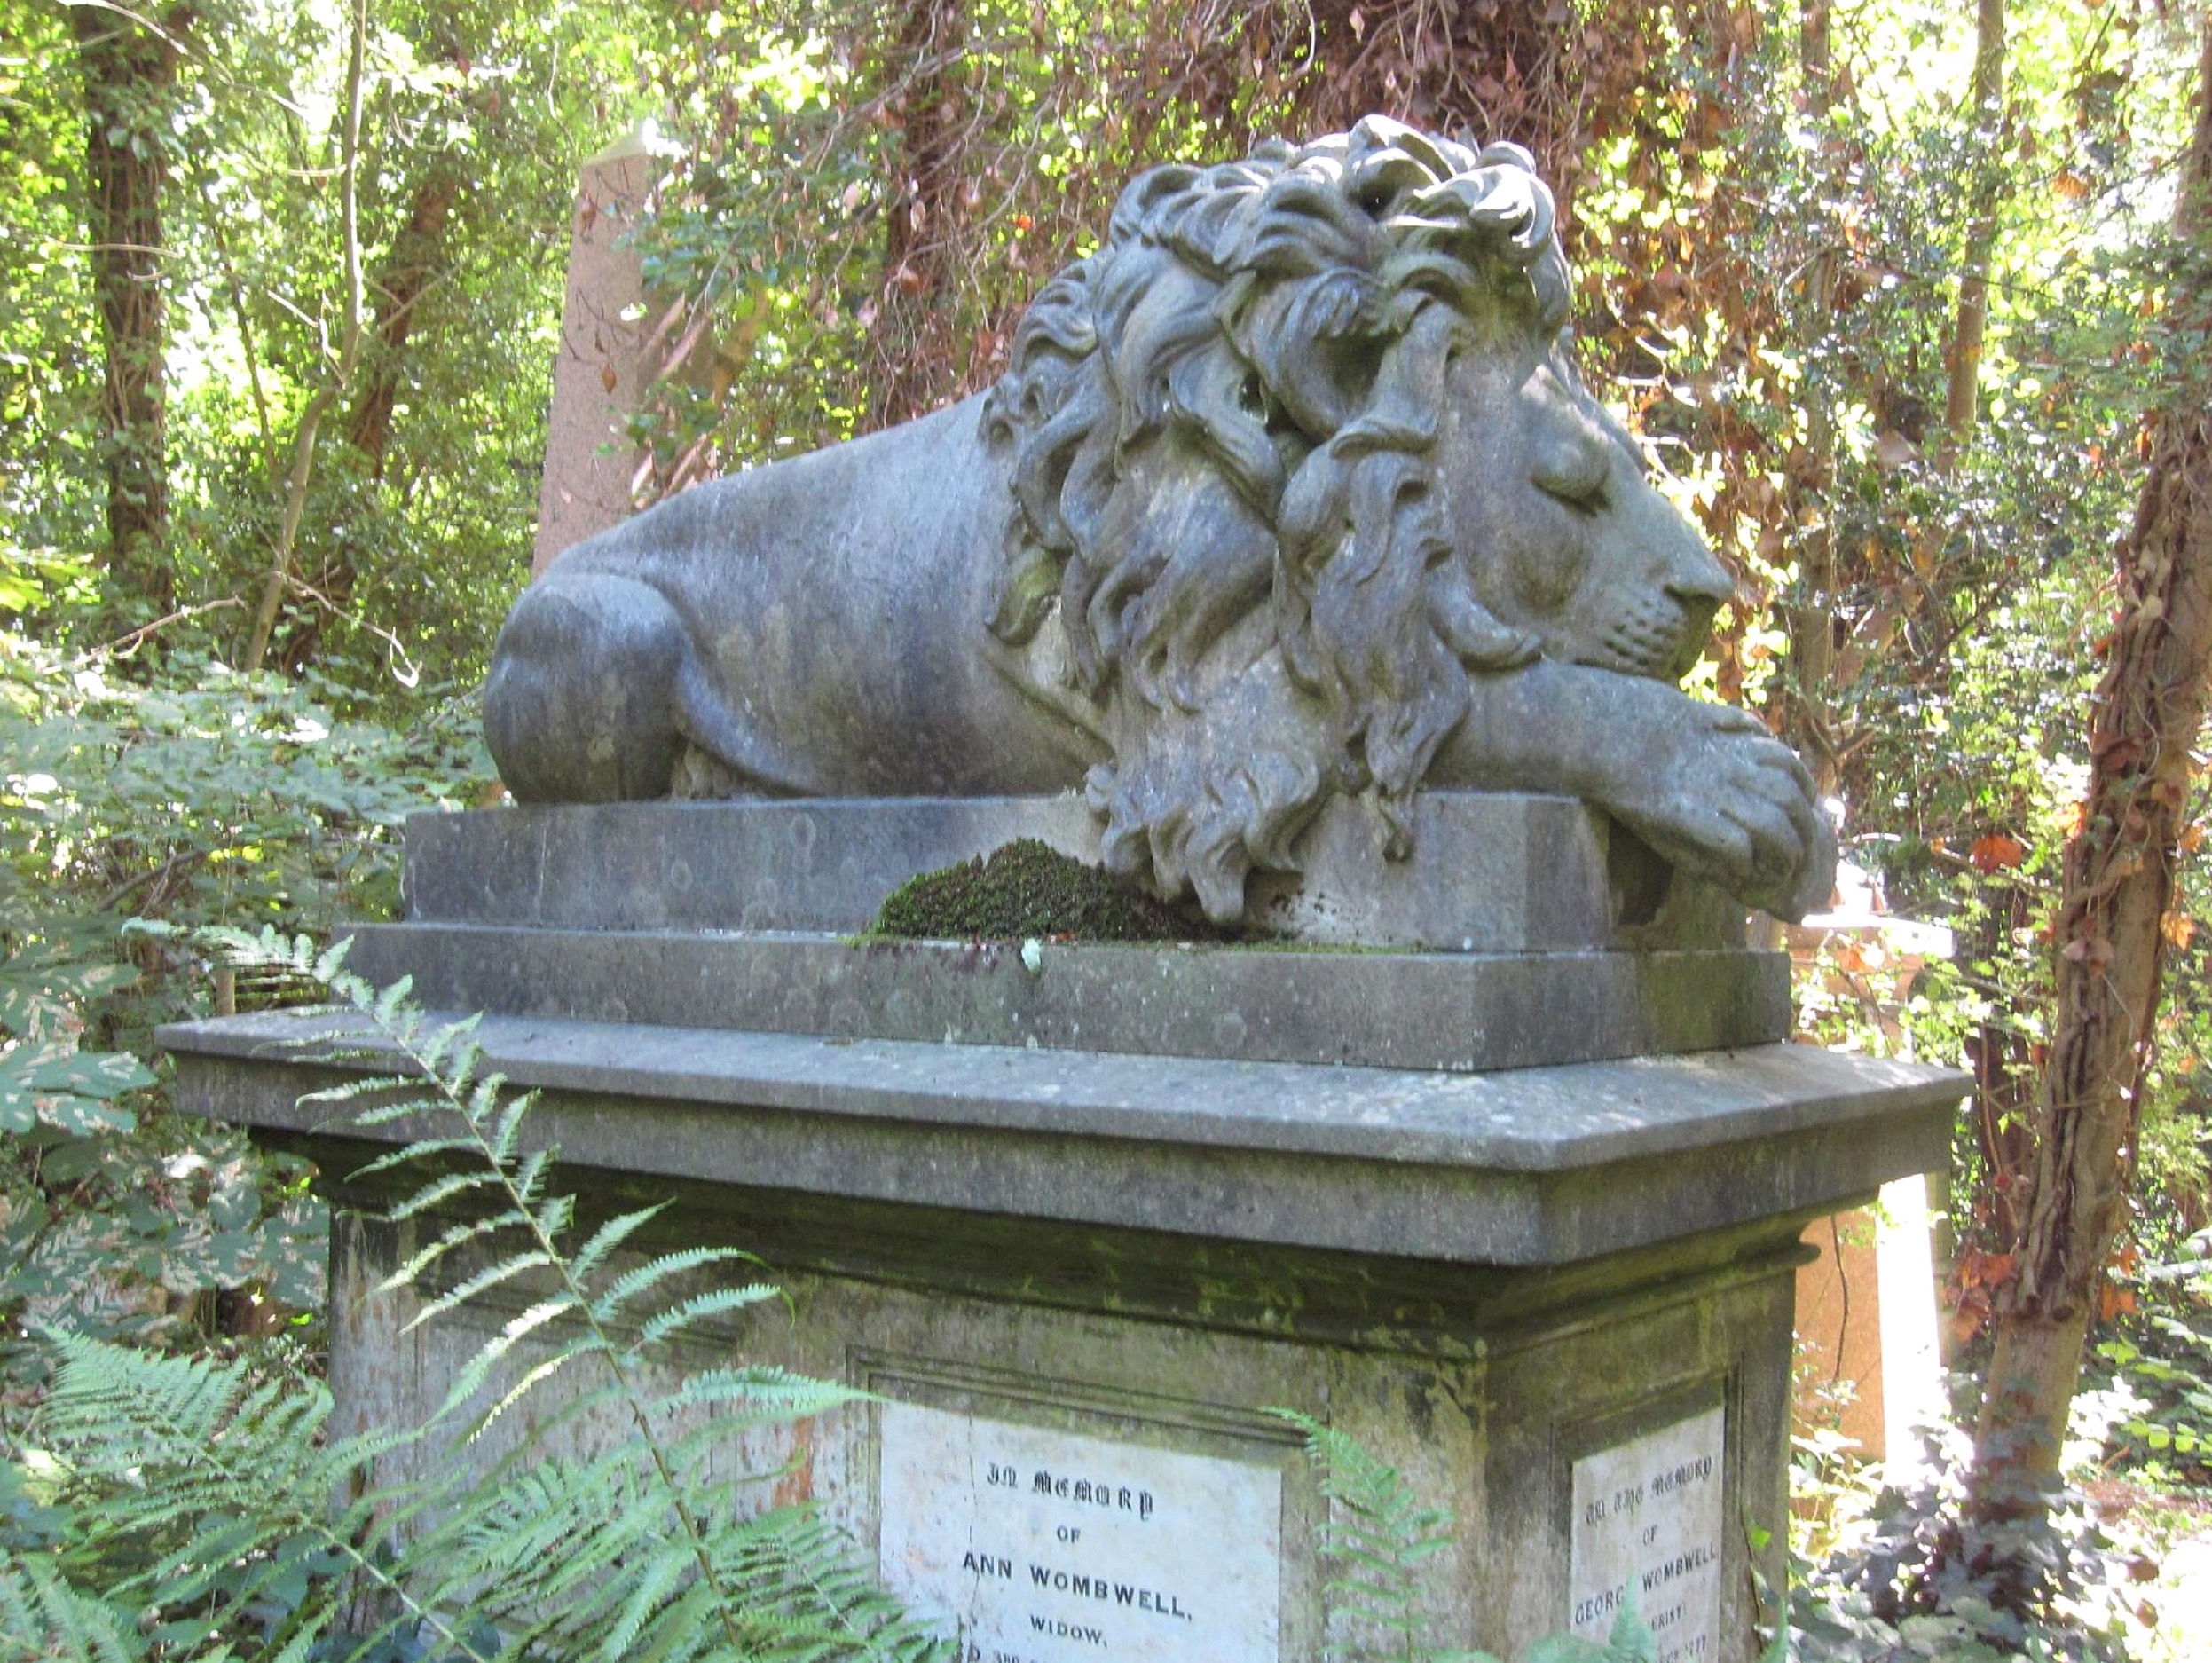 George Wombwell's tomb in Highgate Cemetery (image: Copyright Flickr user, Thomas)